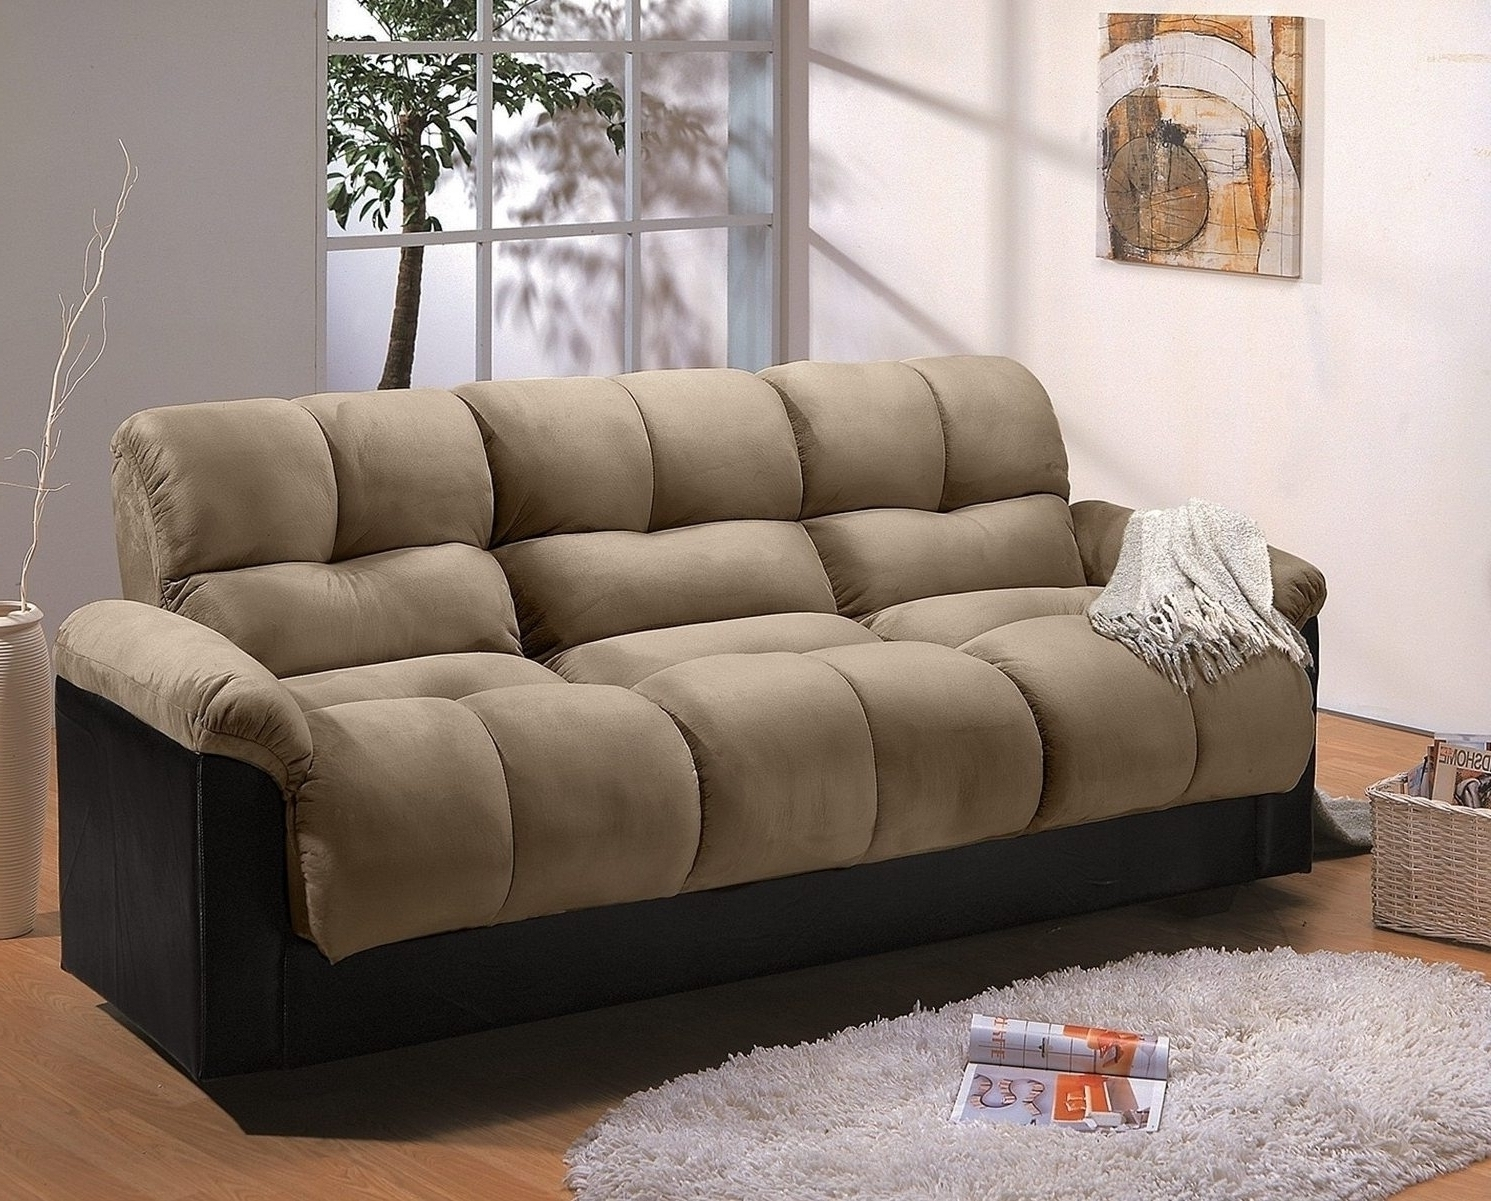 Most Recent Lazy Boy Sectional Sofa Grand Home Furnishings — The Home Redesign Inside Grand Furniture Sectional Sofas (View 13 of 15)